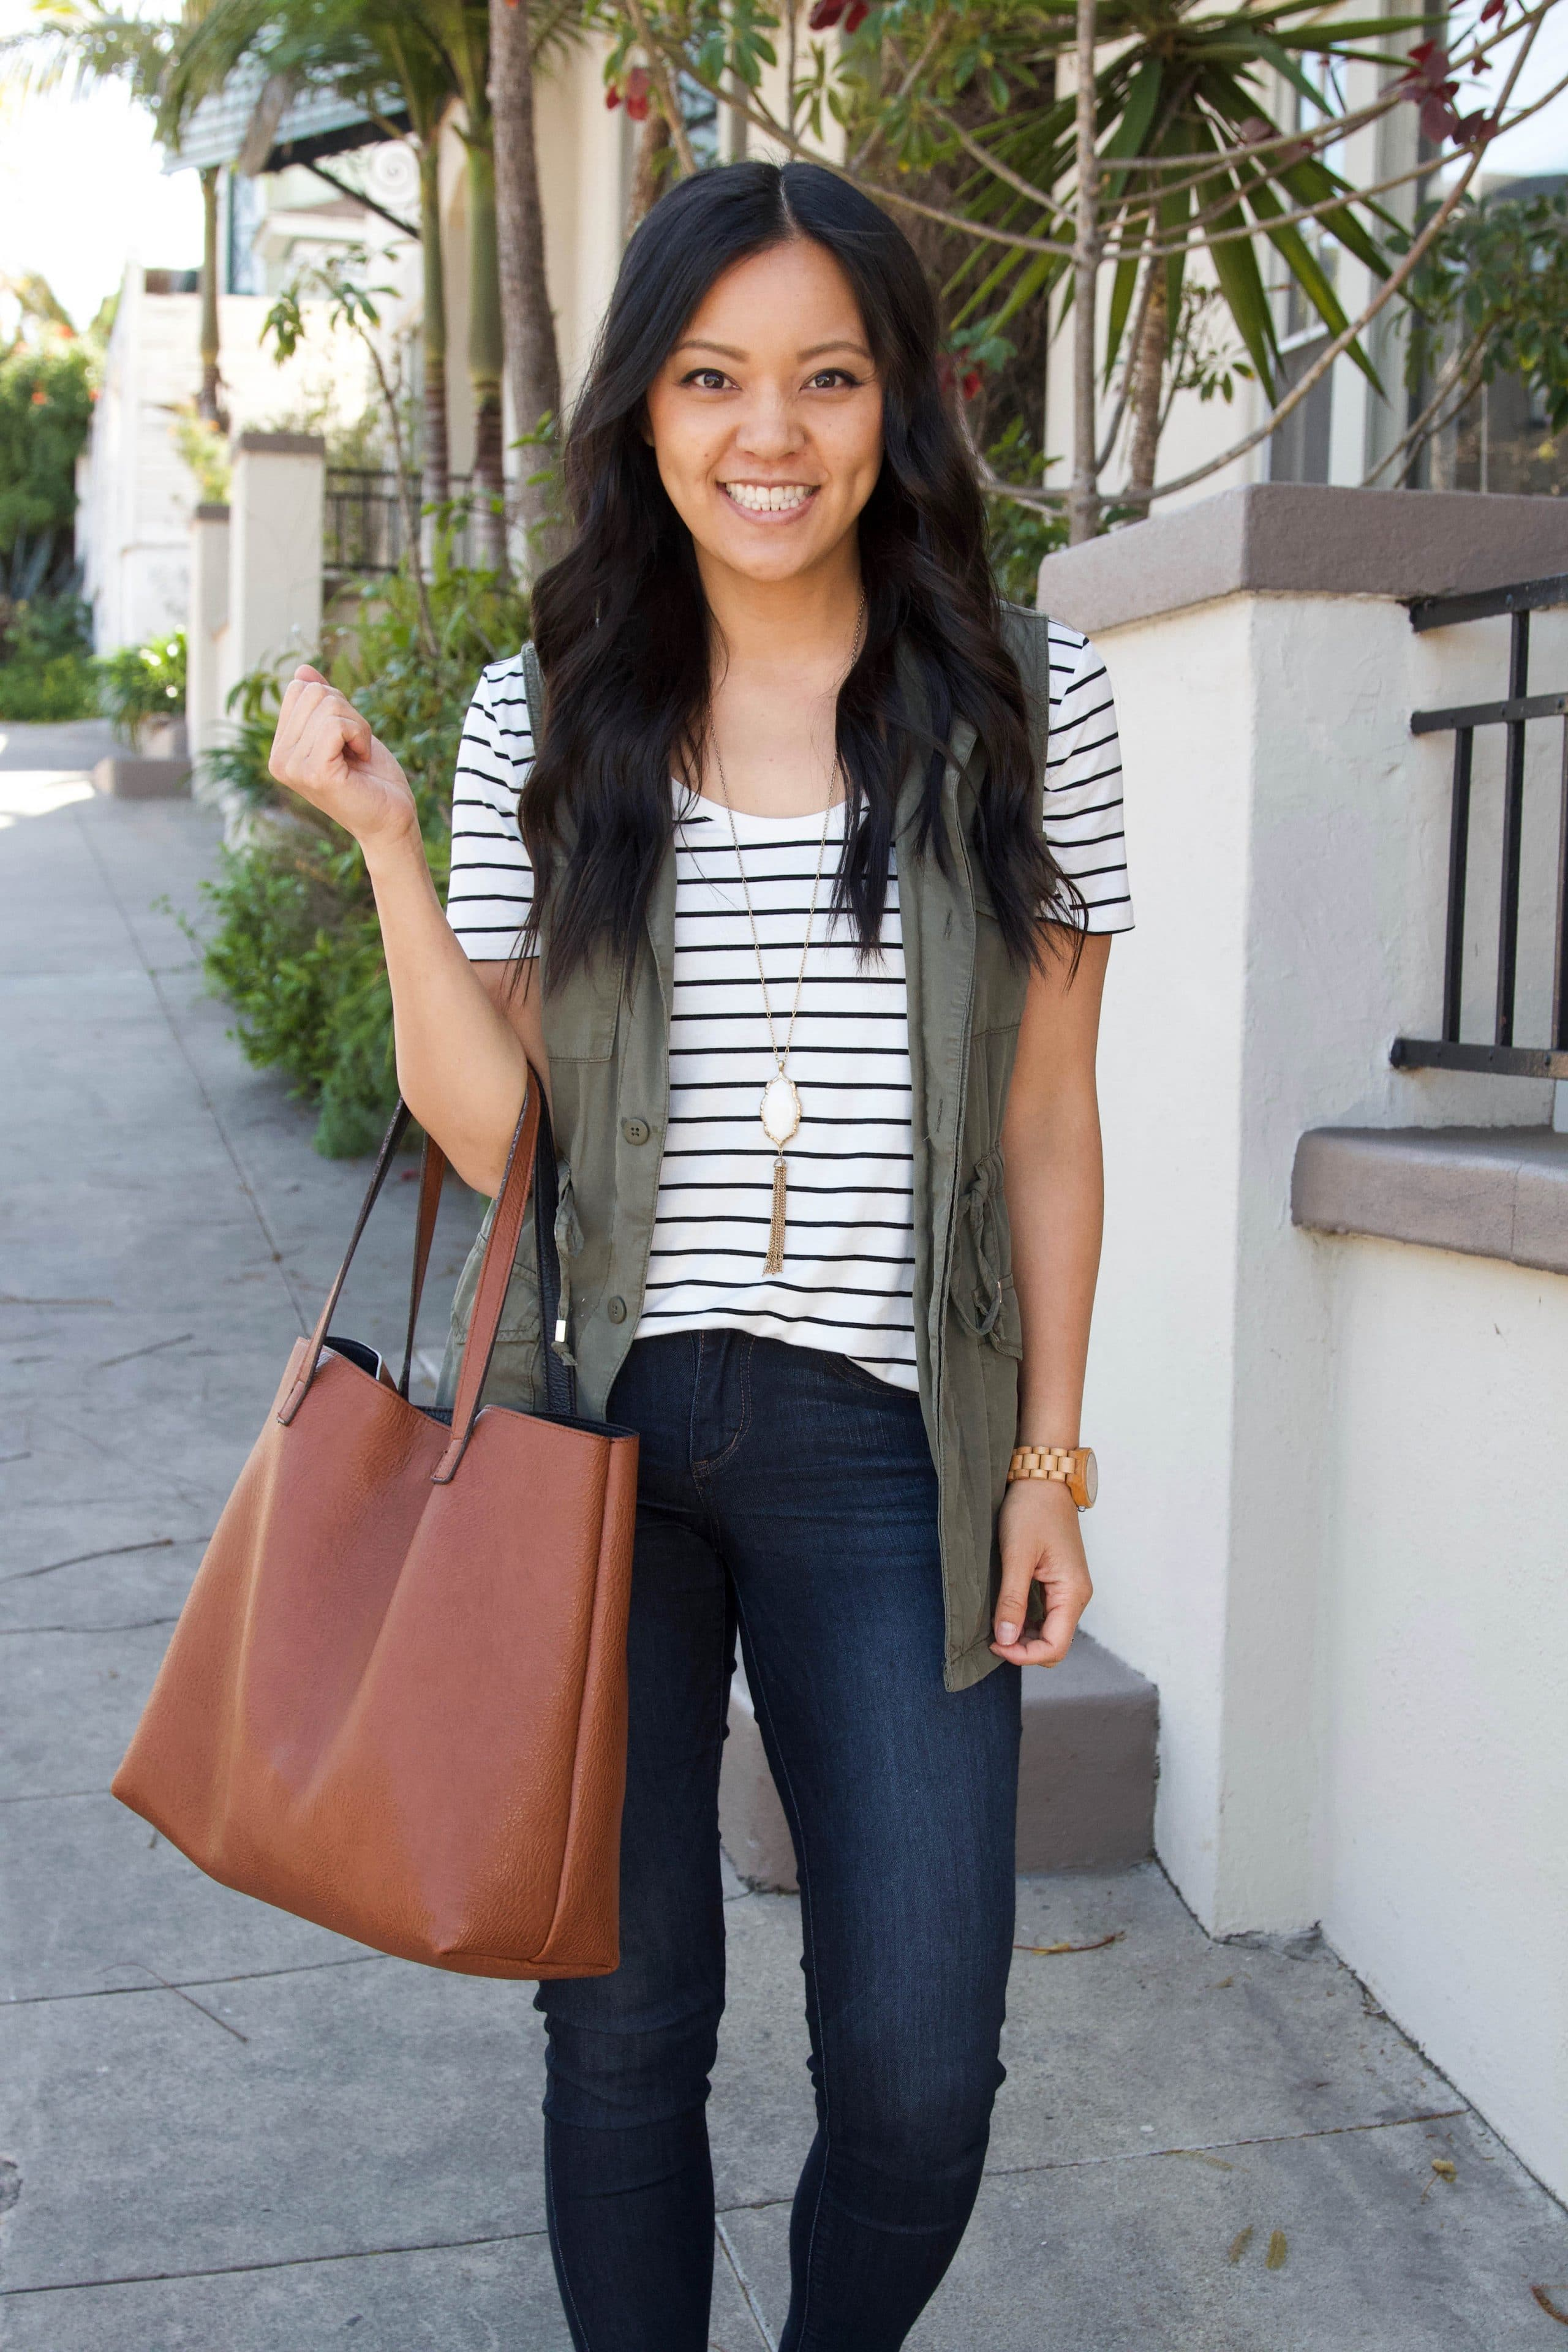 casual outfit for weekend: utility vest + jeans + tote